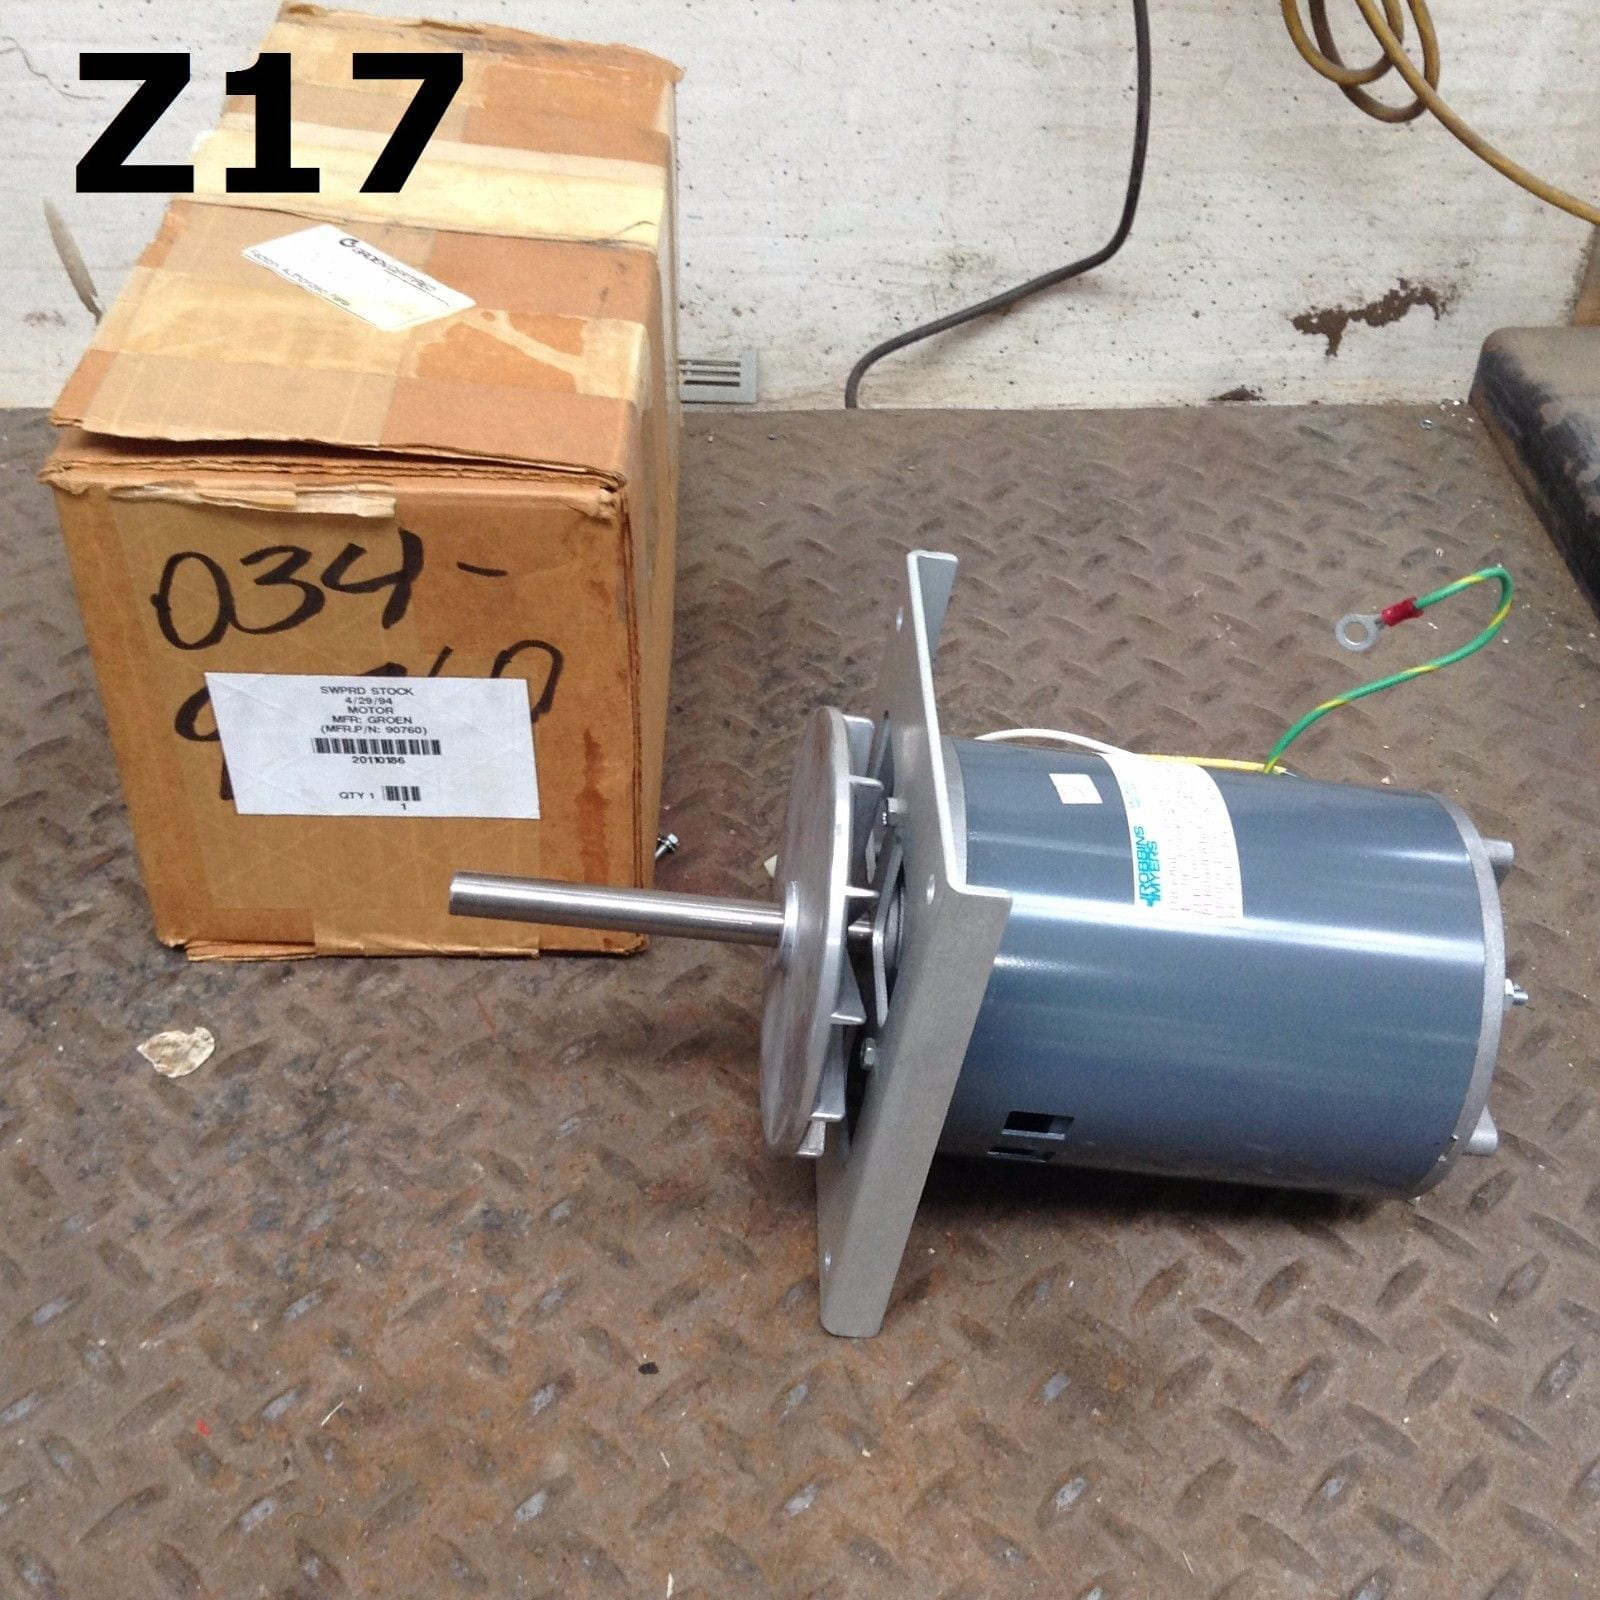 Groen robbins myers kk mx42 b0l 90760 fan motor 1 2hp for Robbins and myers replacement motors